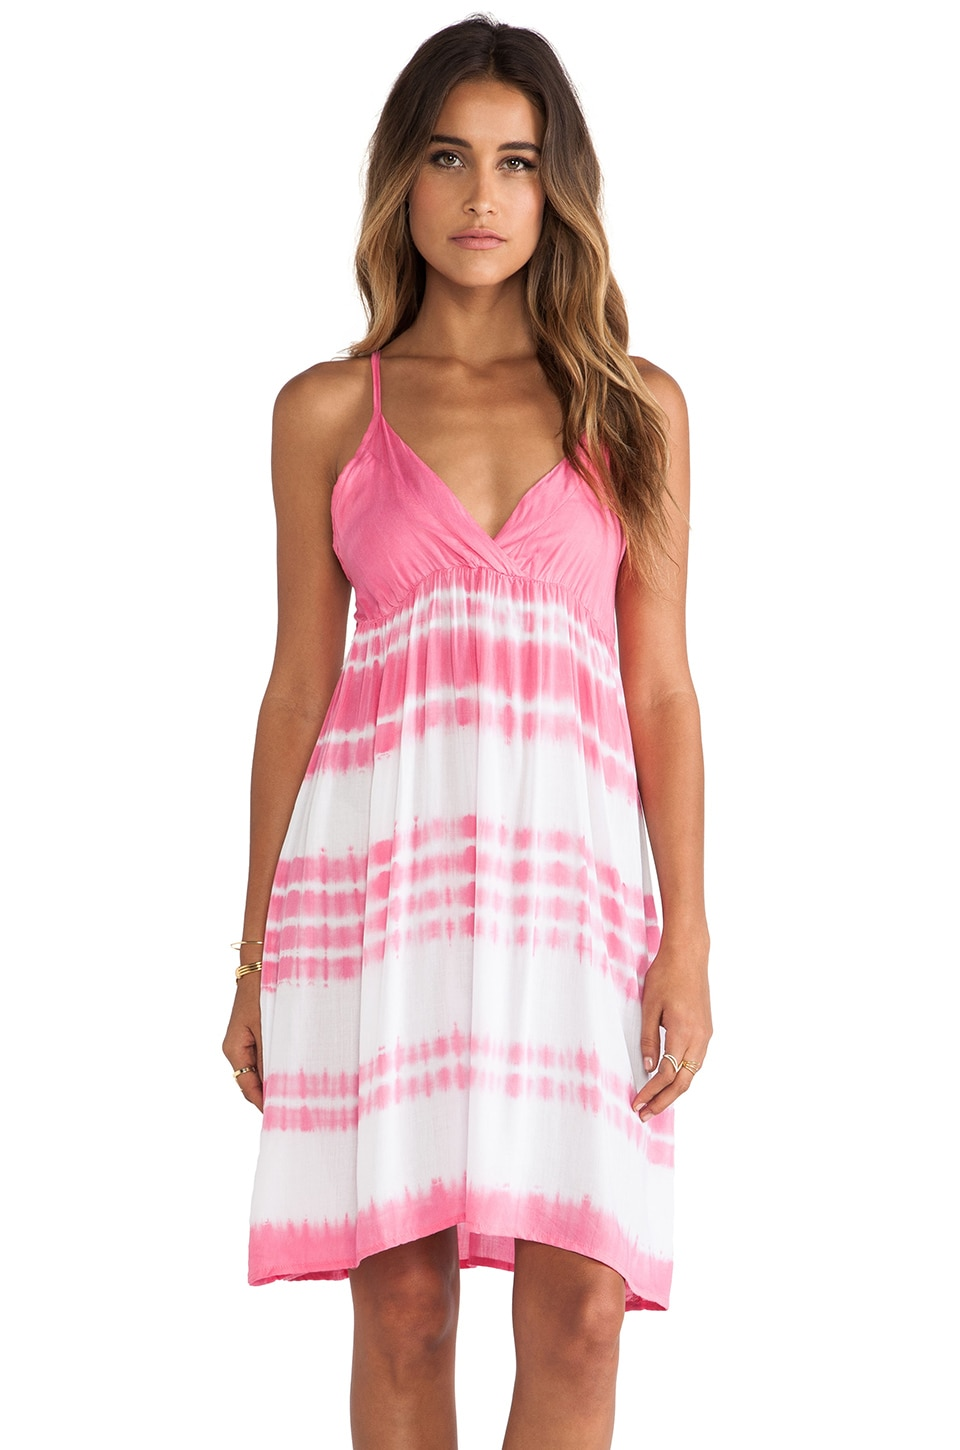 Tiare Hawaii Gracie cami Mini Dress in Hot Pink & White Tie Dye